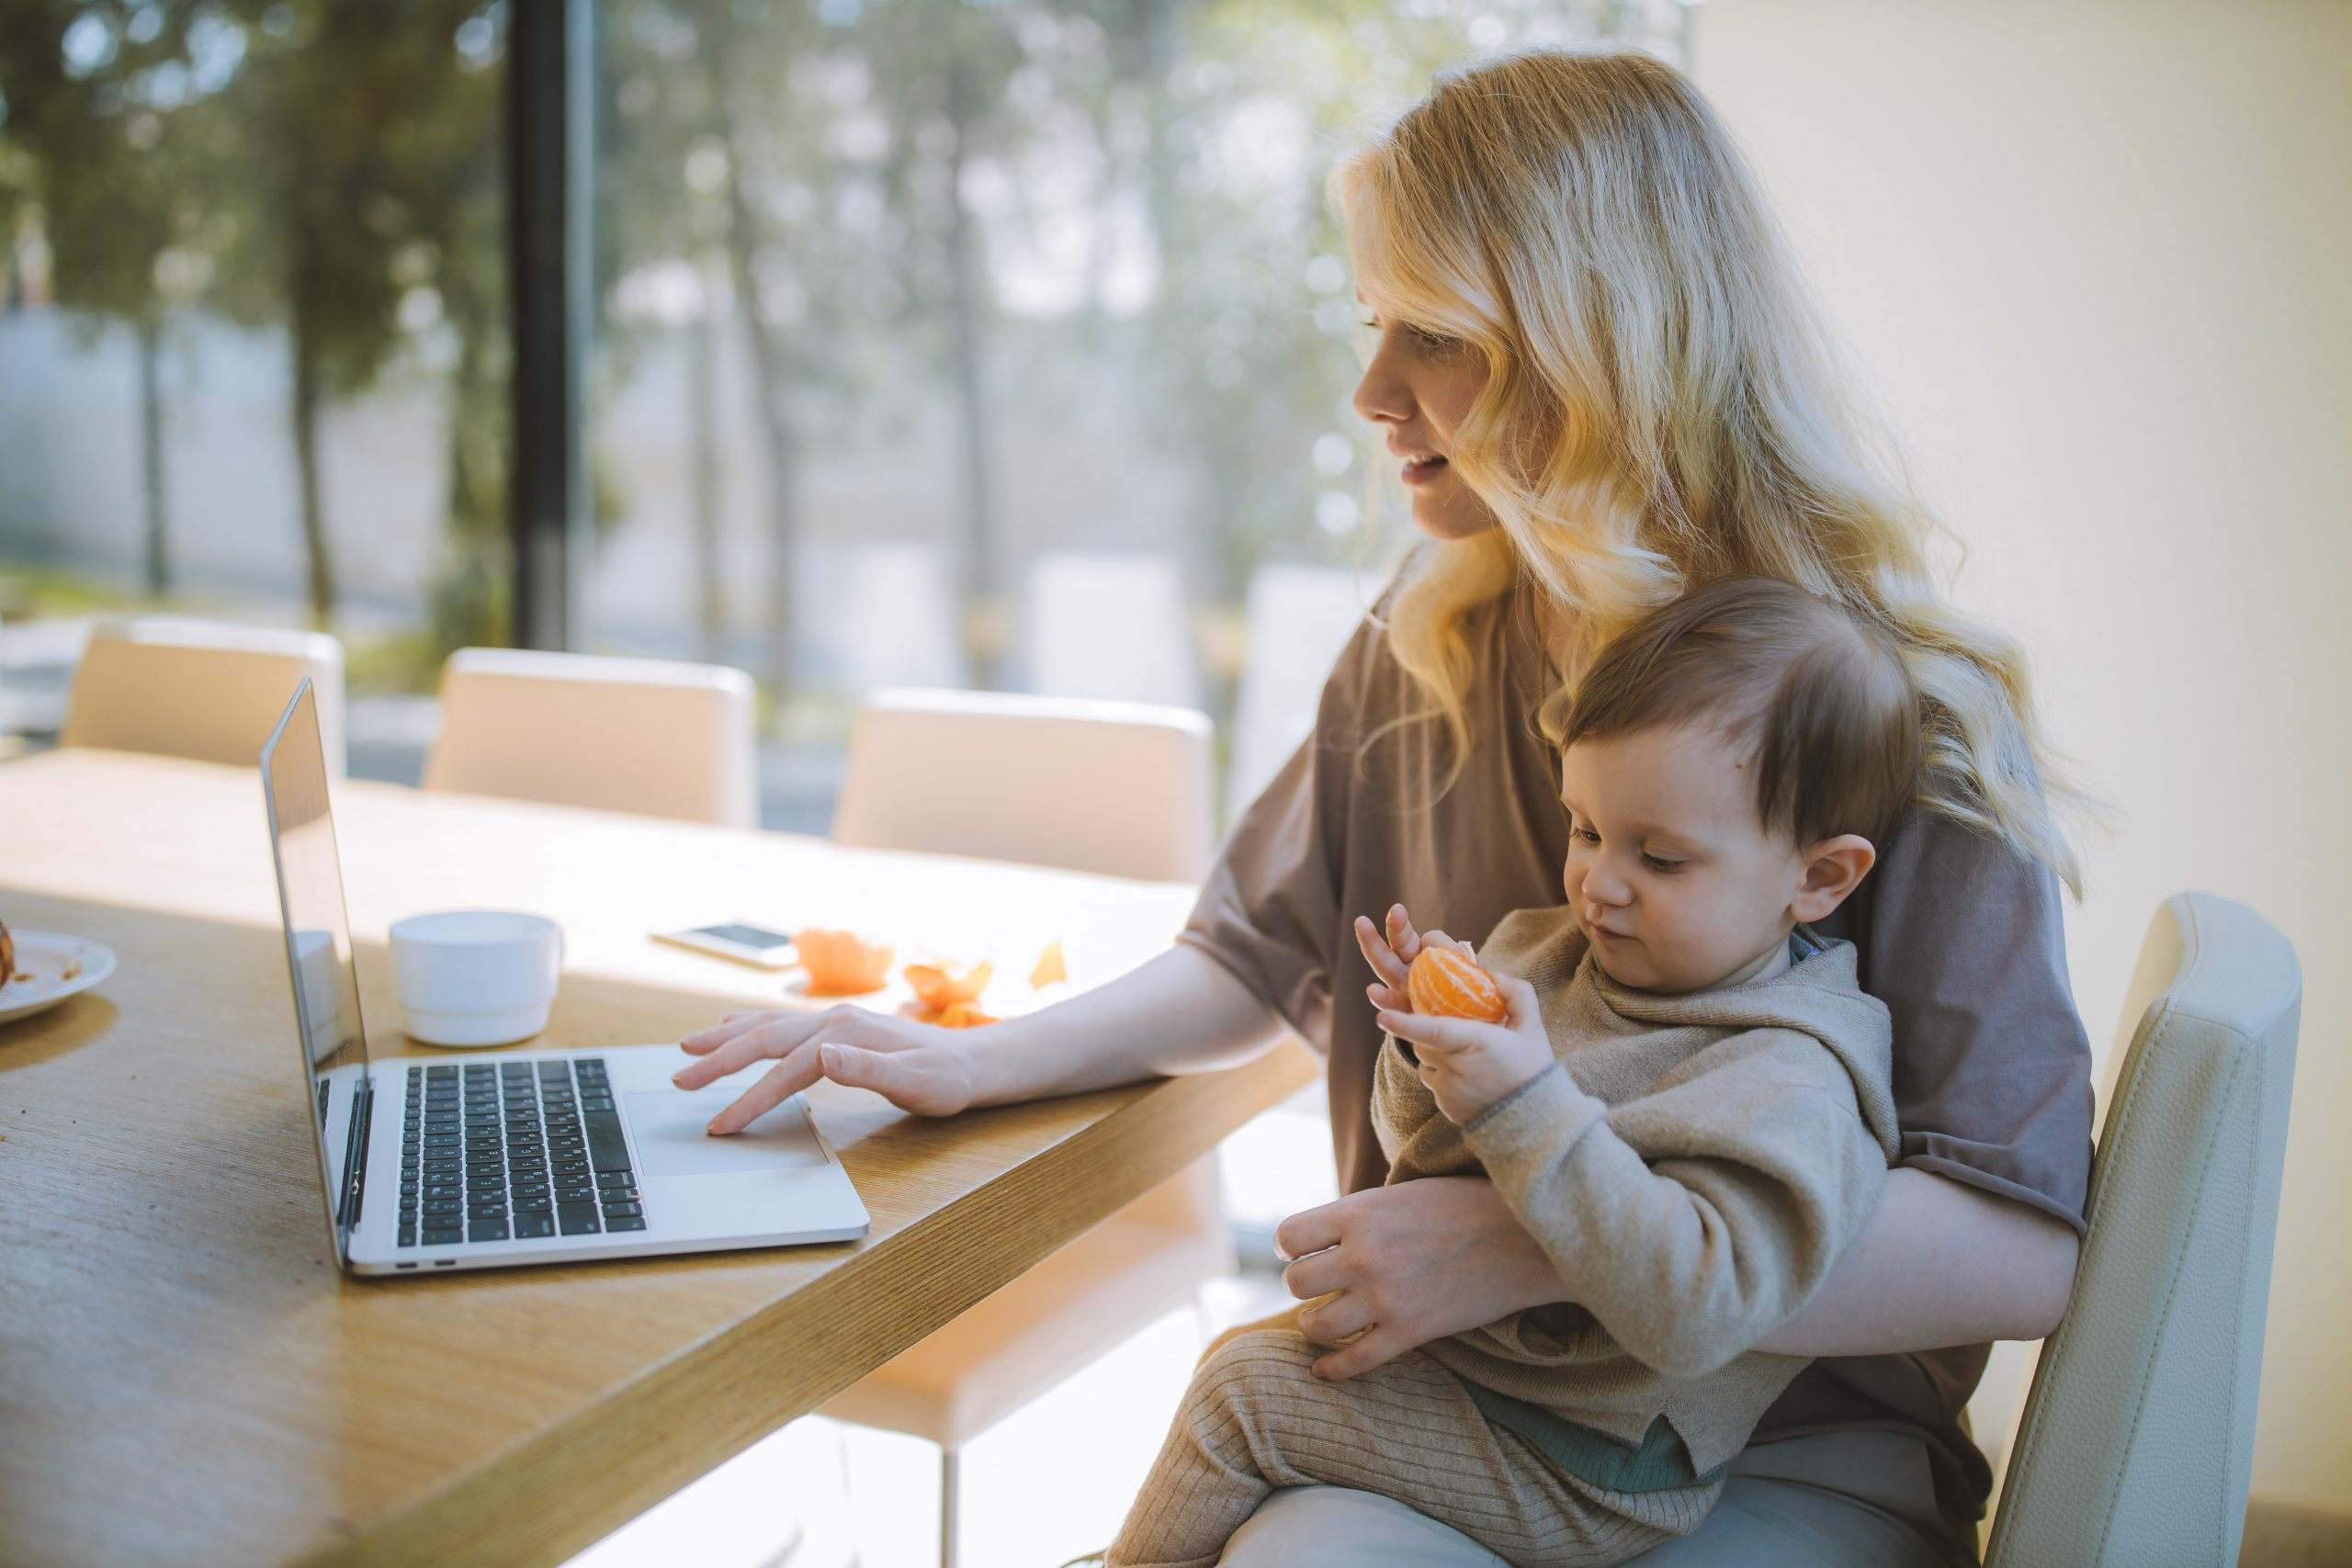 woman holding kid while on laptop